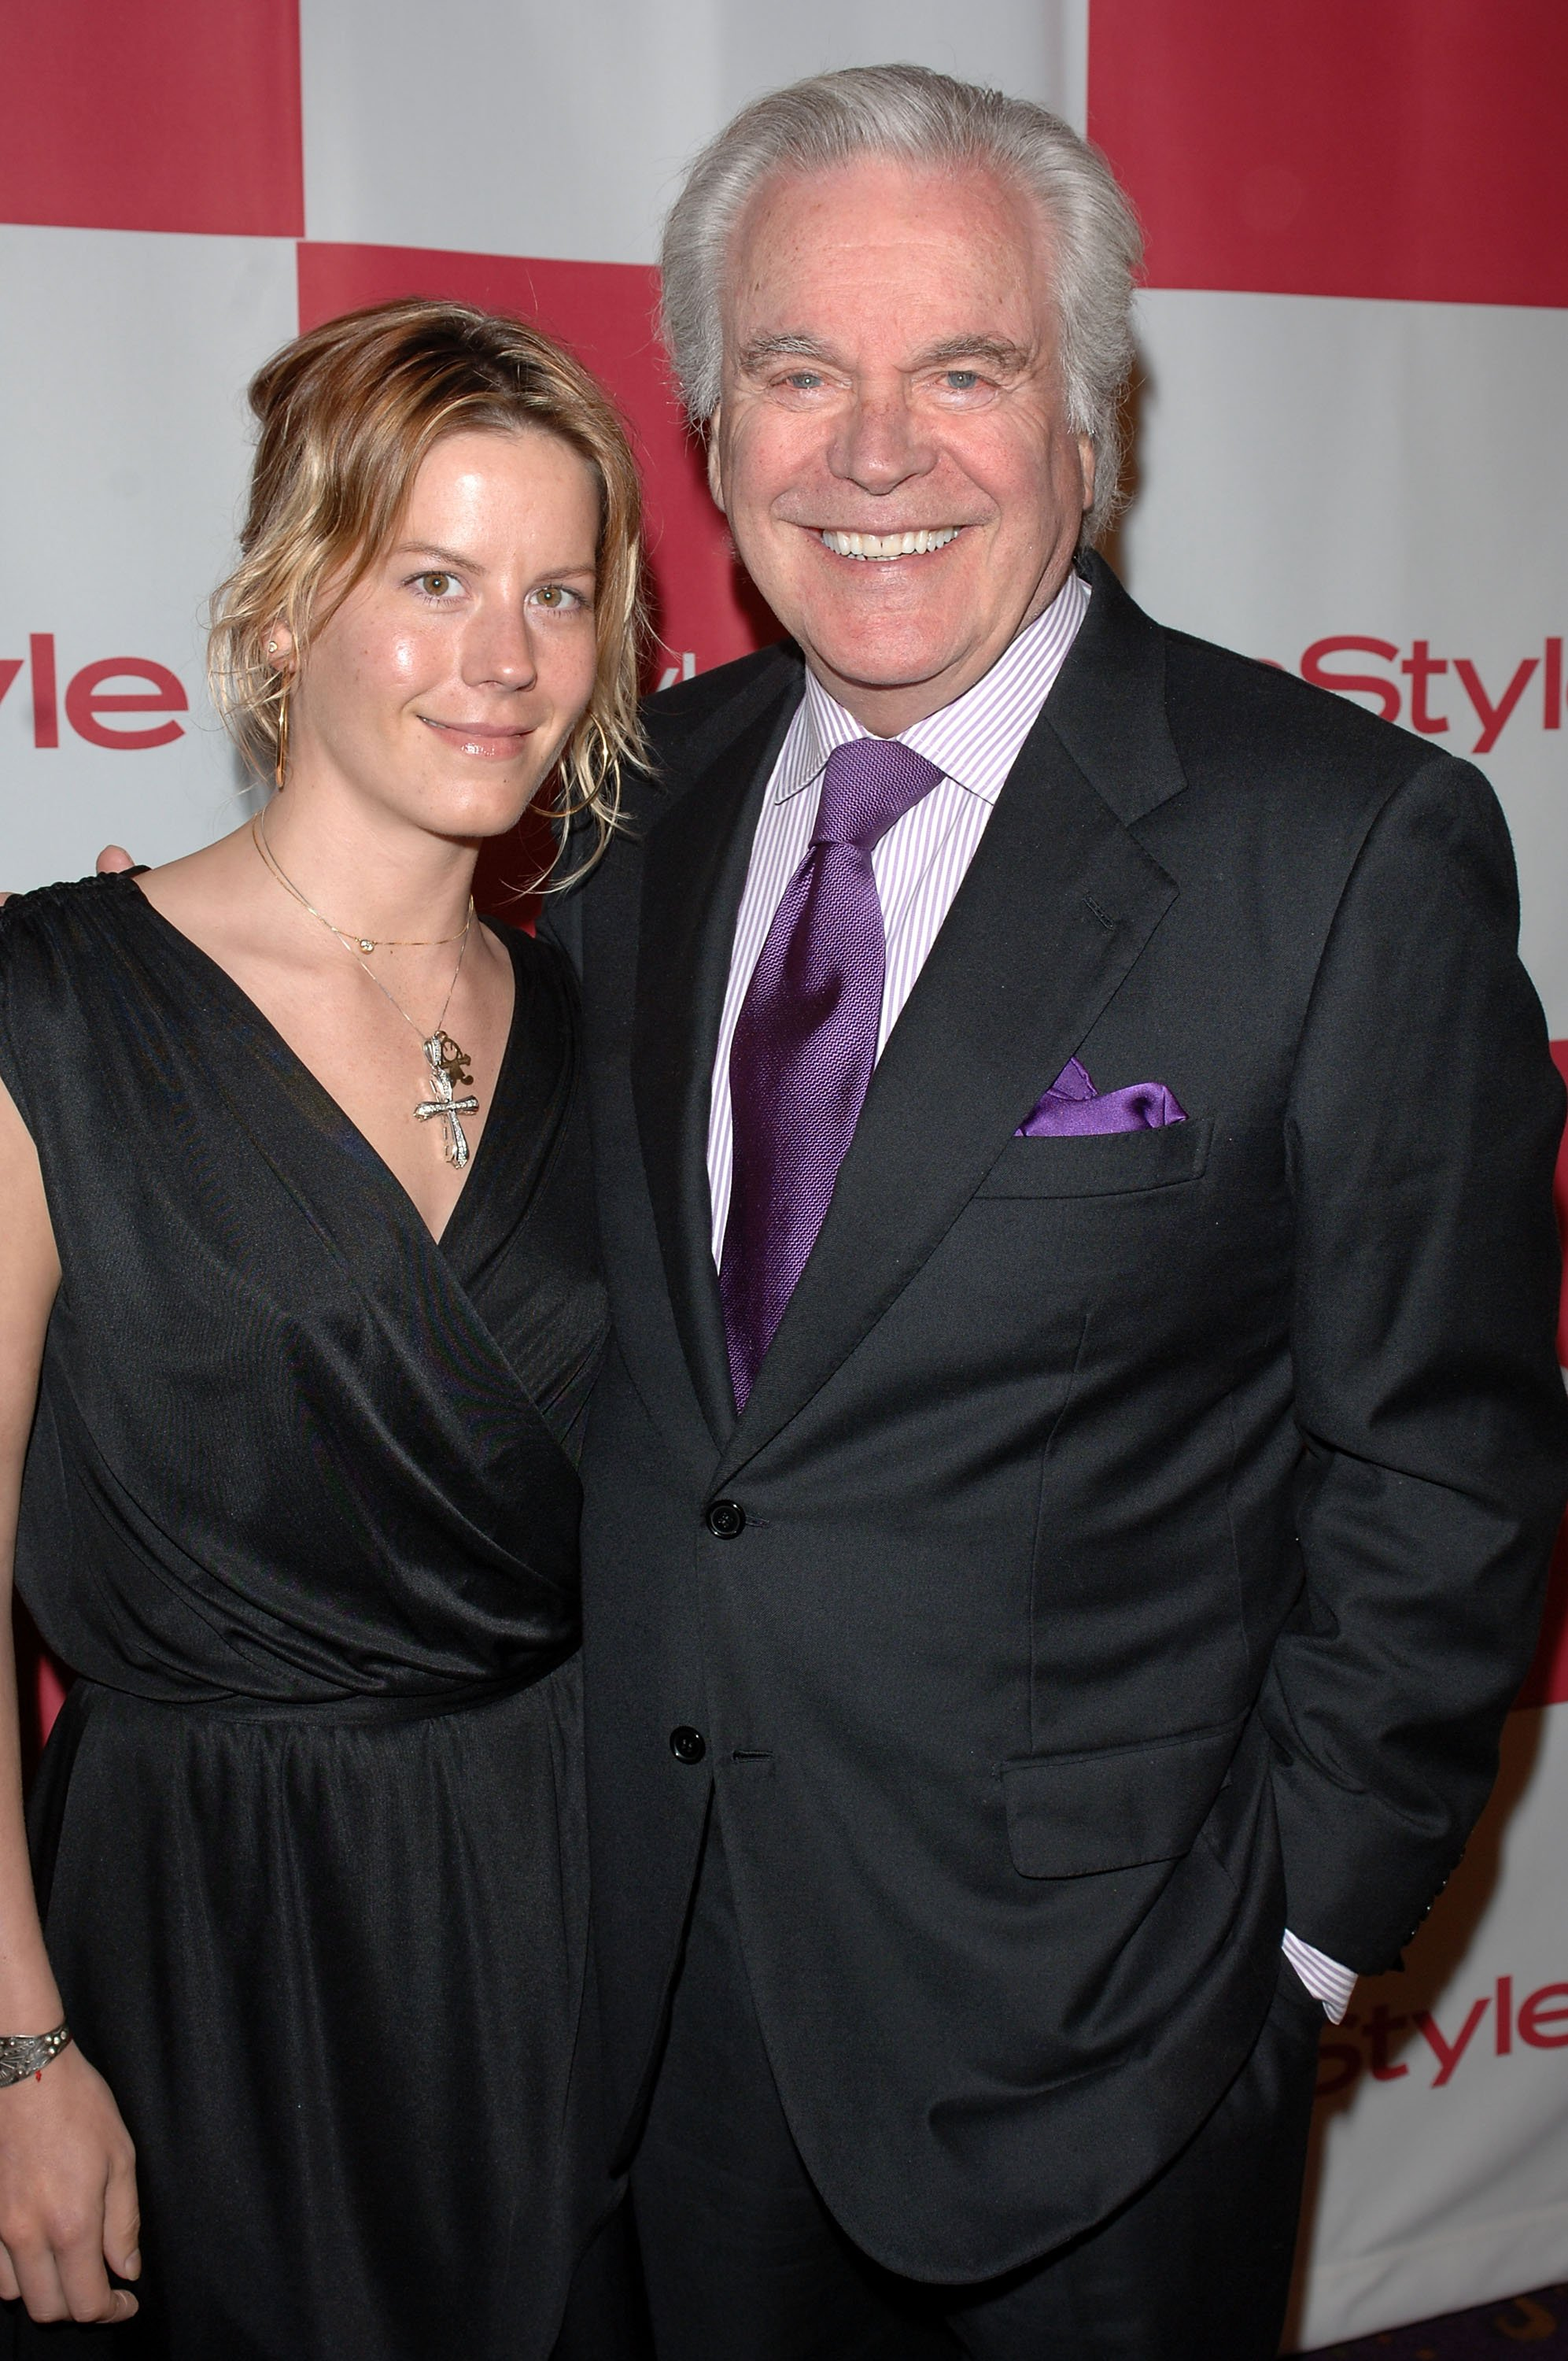 """Robert Wagner and daughter Courtney Wagner attend the In Style party celebrating the publication of Joyce Ostin's book """"A Tribute to Hollywood Dads"""" at Spago on May 17, 2007, in Beverly Hills, California. 